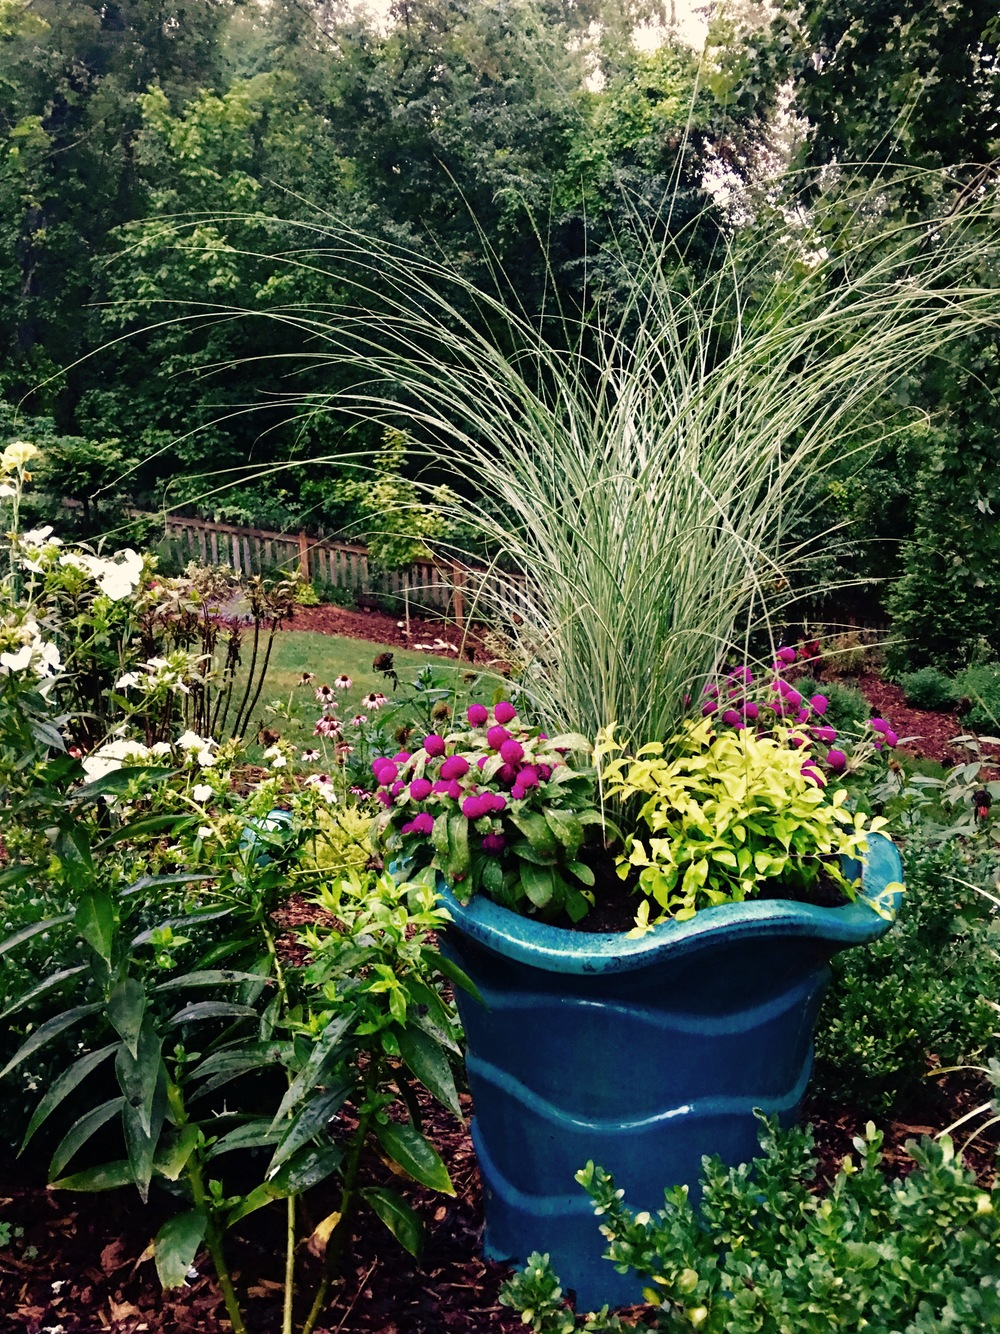 Containers in a young or old garden help add height, color, shape and texture to the garden. The miscanthus grass is a great choice to add movement to the garden.